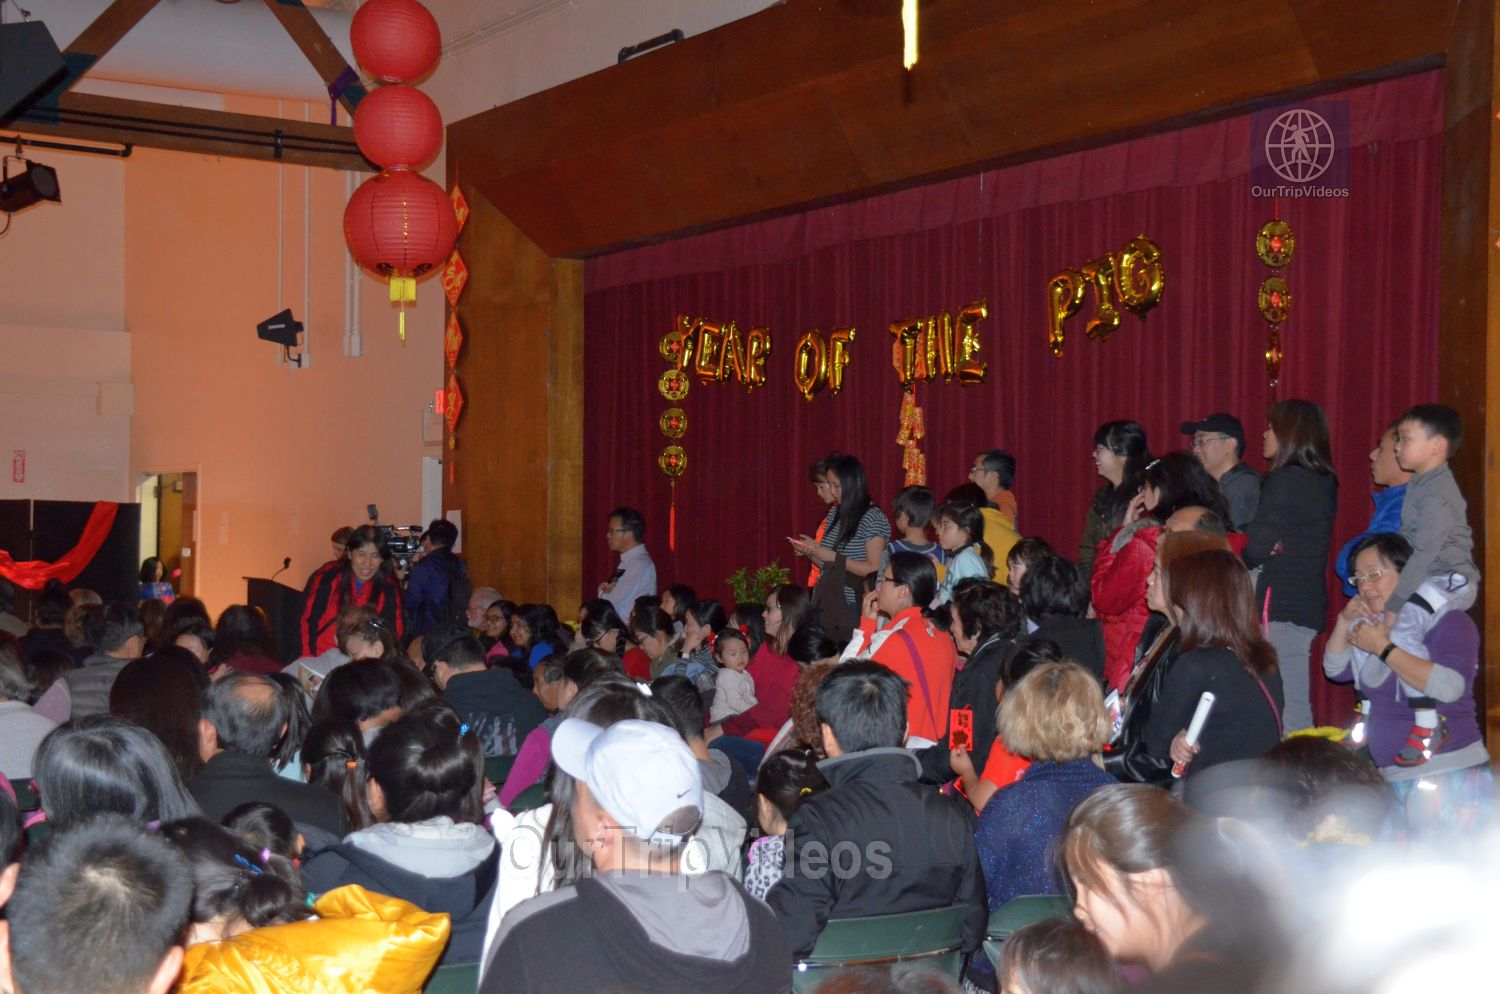 Chinese Lunar New Year Celebration, Milpitas, CA, USA - Picture 14 of 25